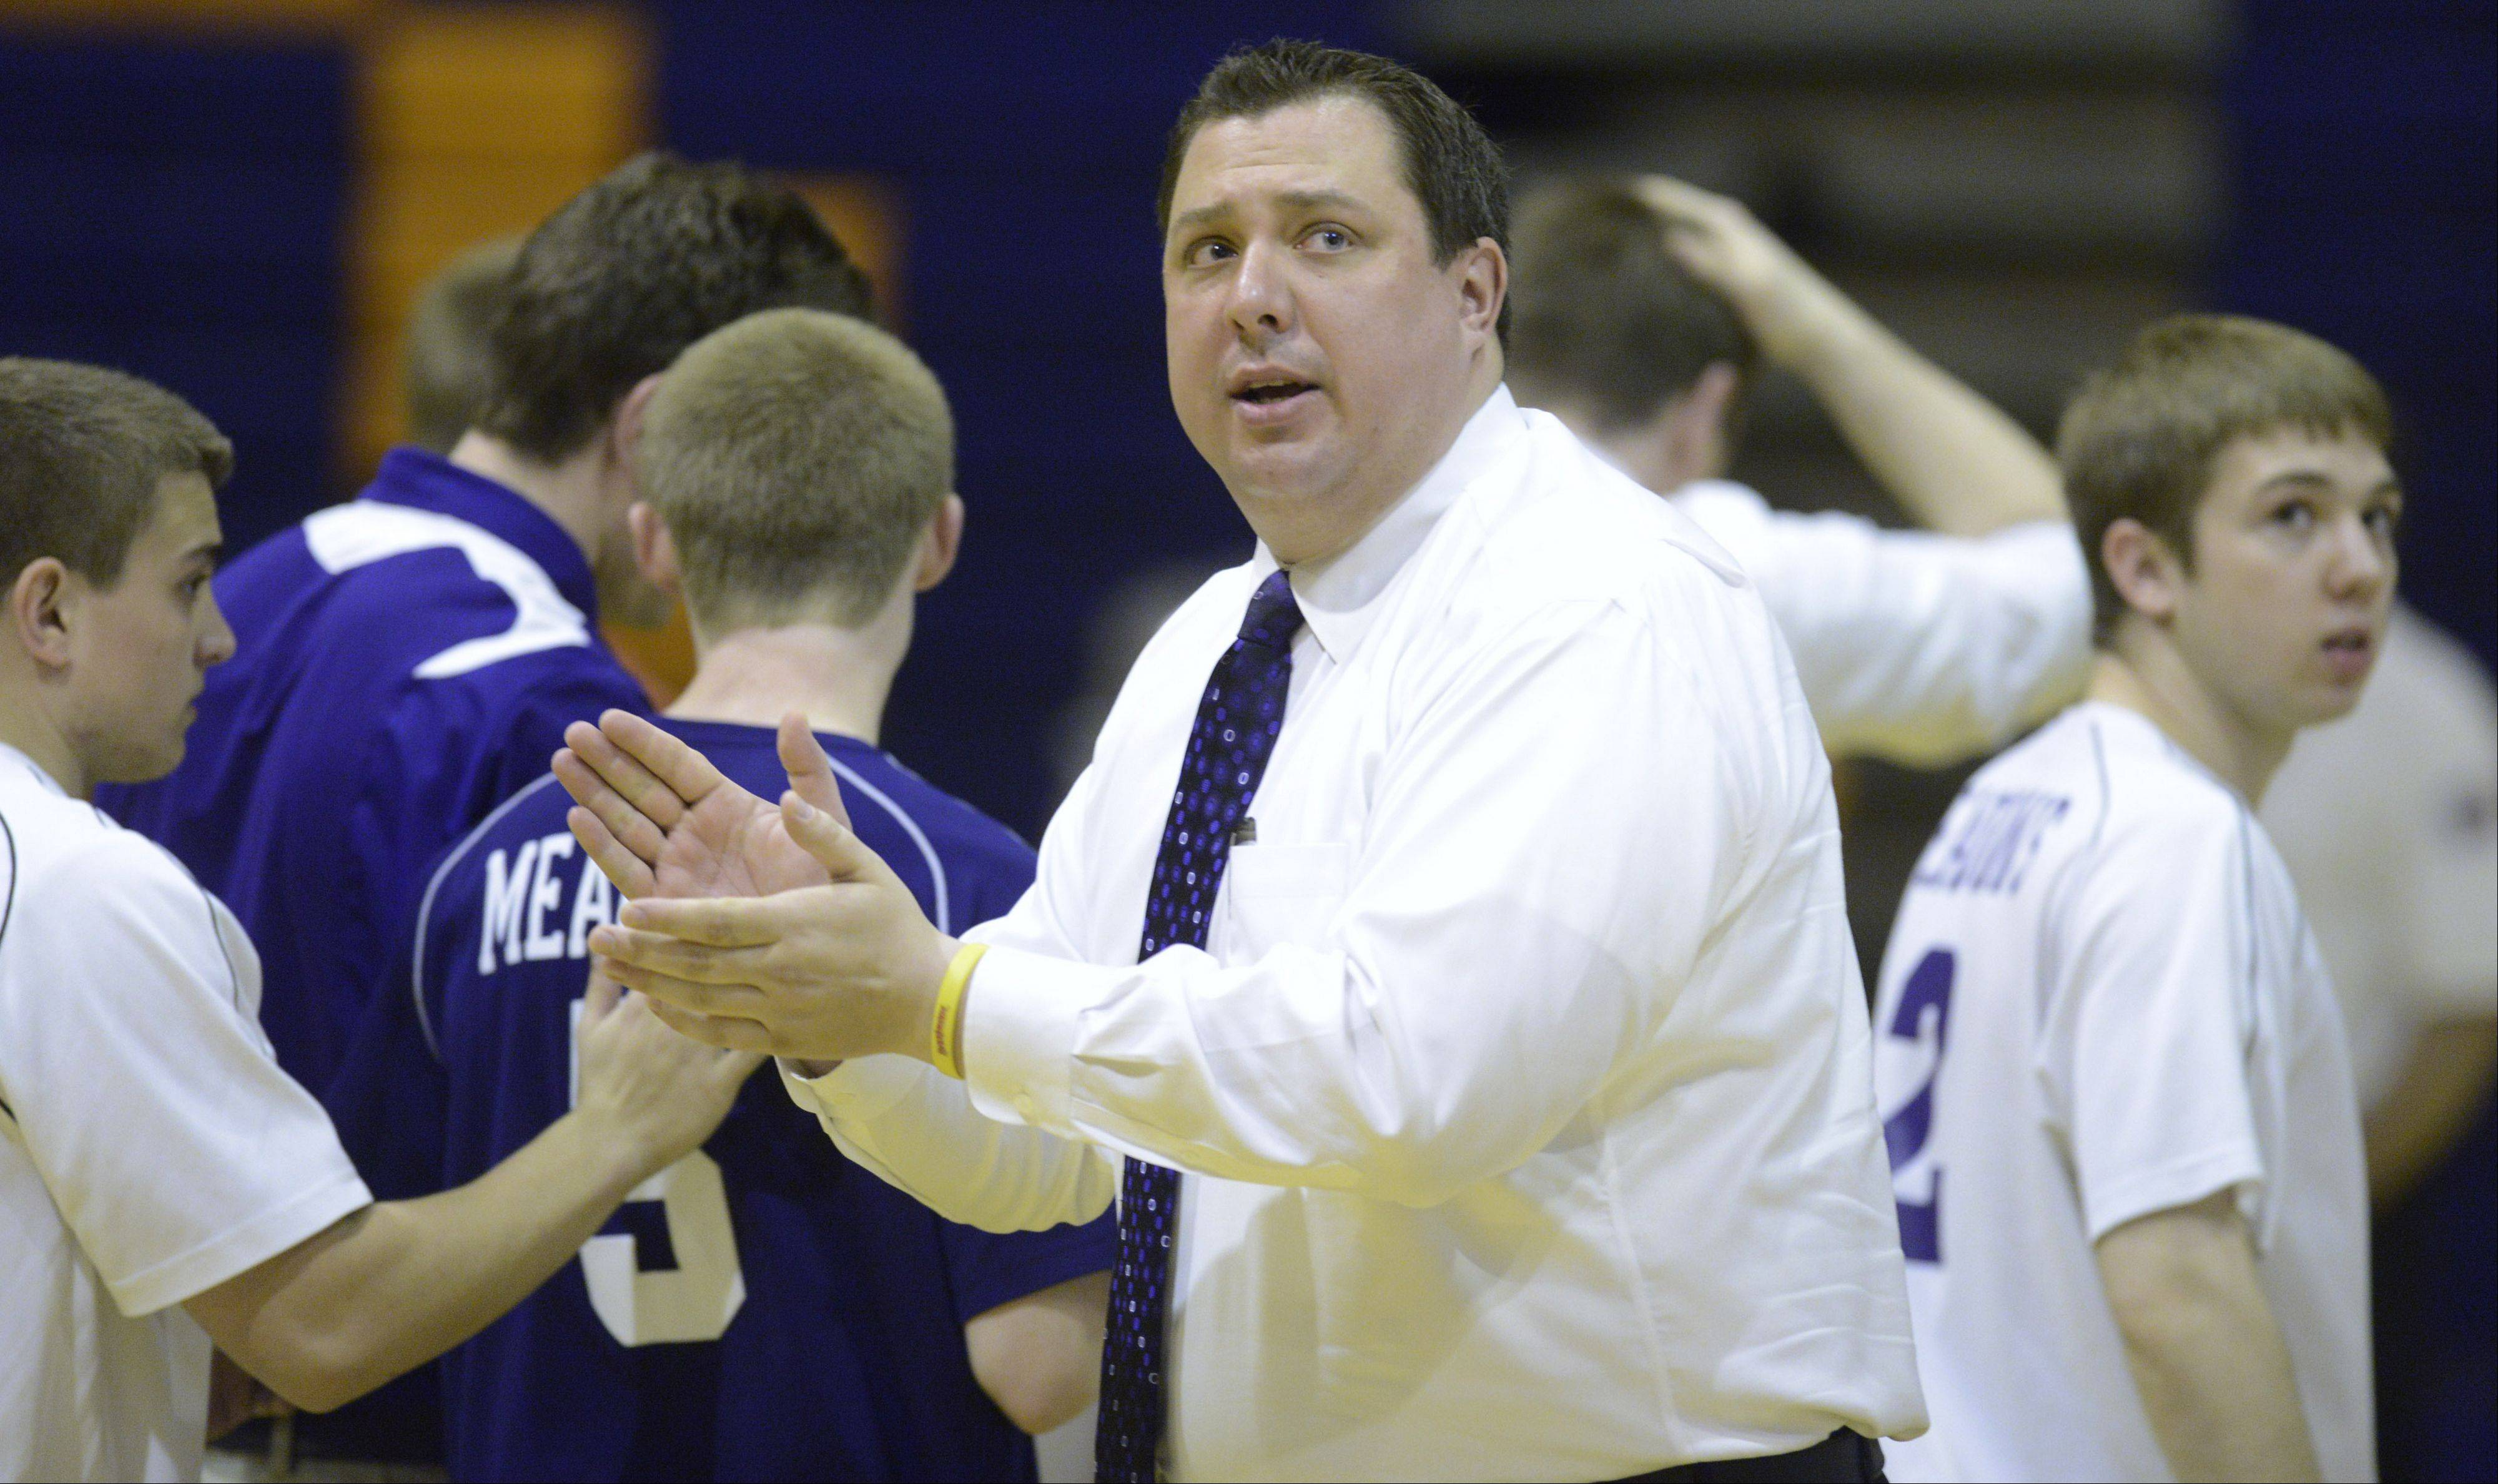 Rolling Meadows boys volleyball coach Tim Piatek leads his team during Tuesday's match at Buffalo Grove.